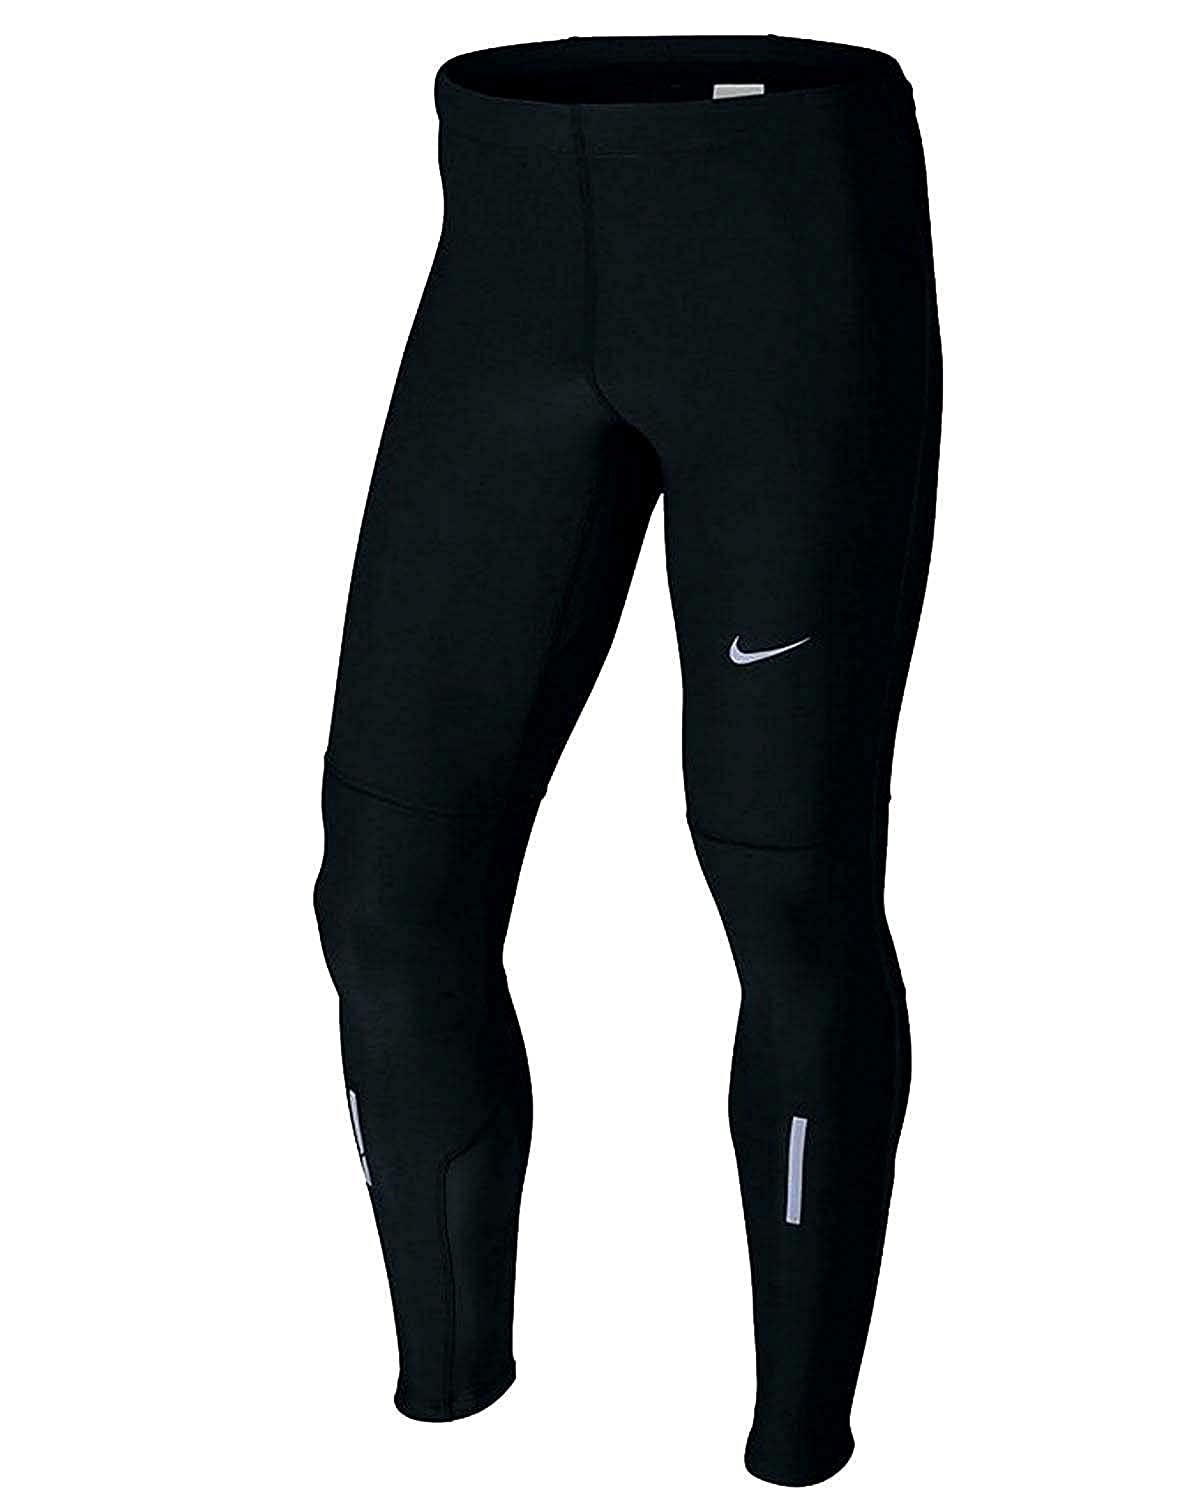 4aee9e85a6851 Amazon.com: Nike Men's Dri-Fit Tech Running Tights: Clothing